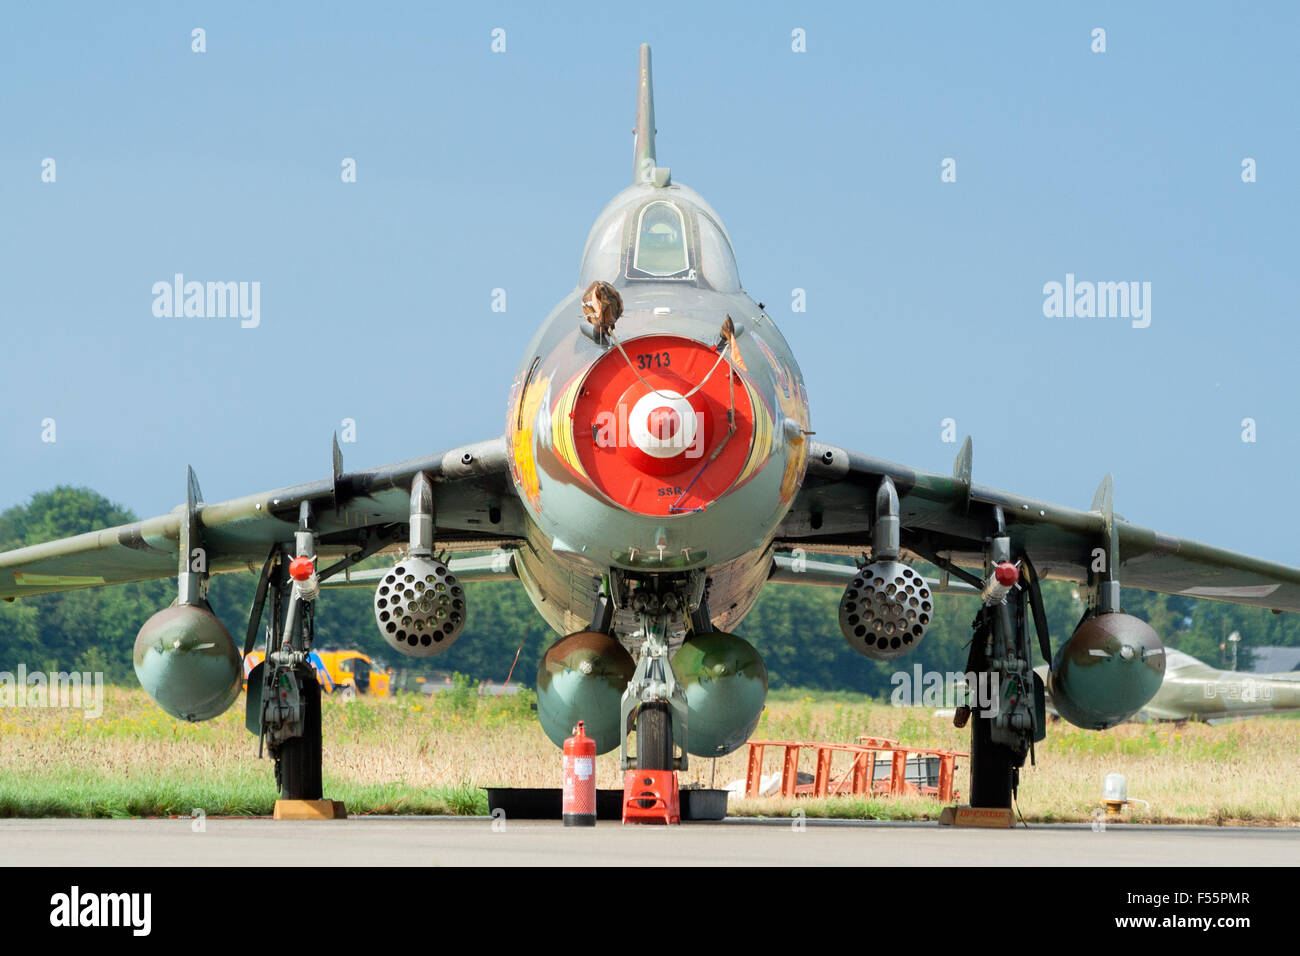 Polish Air Force Sukhoi Su-22 fighter jet on display at the Royal Netherlands Air Force Day - Stock Image